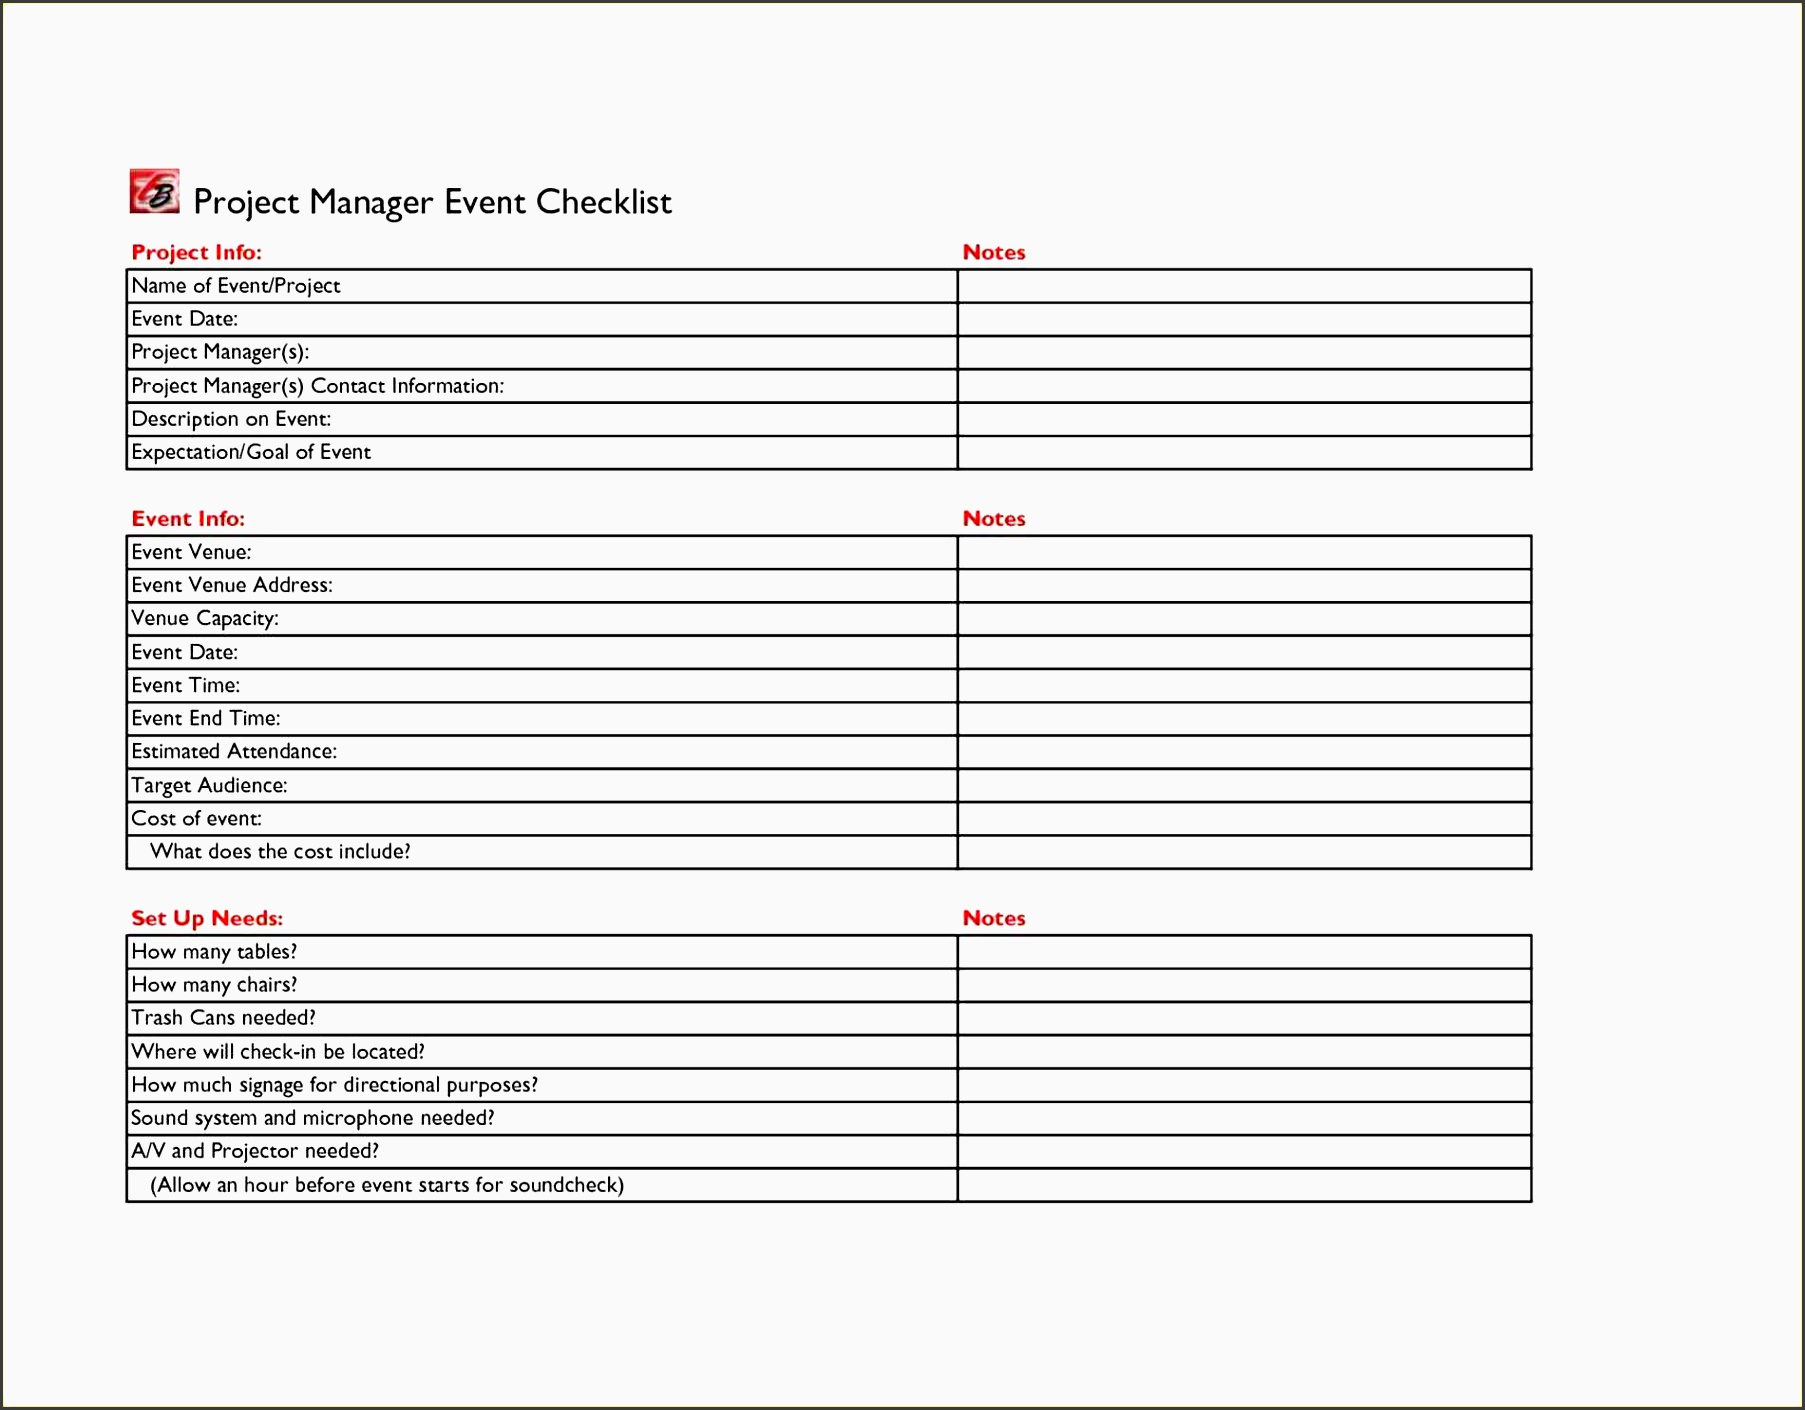 checklist template free event excel job resumes word checklist planning template best events template ideas office resume sample best event planning